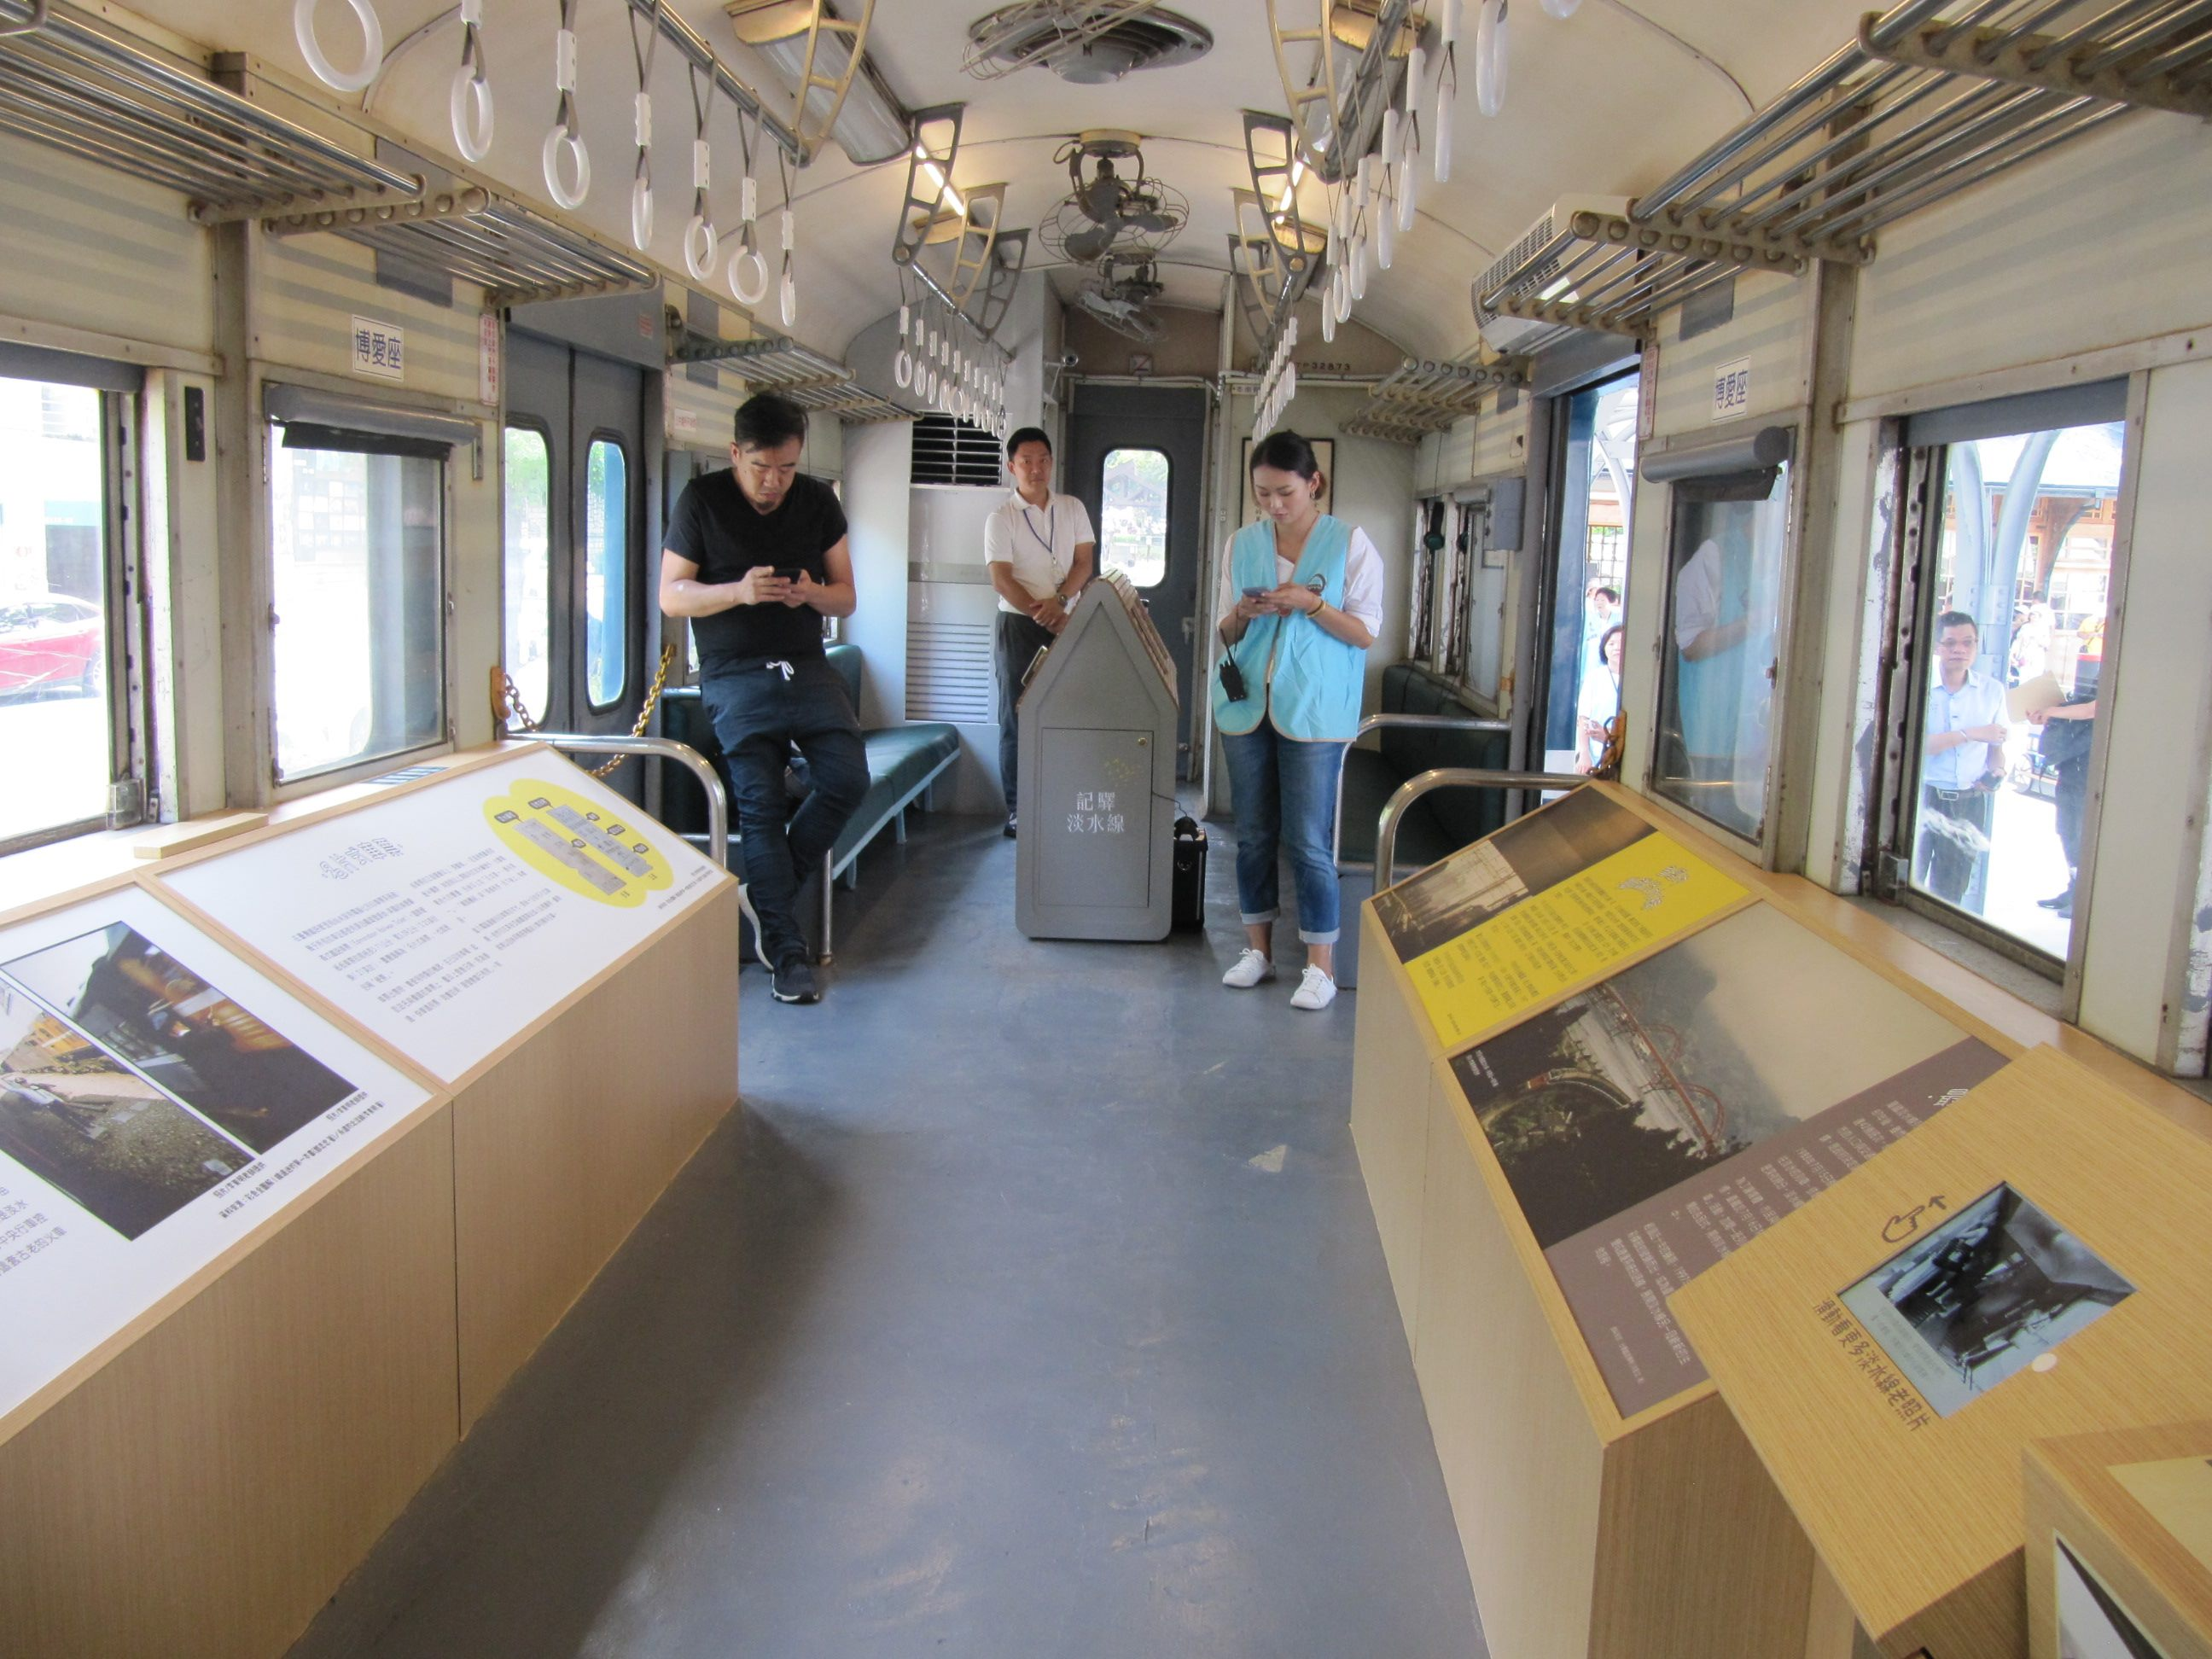 The interior of the 35TP32850 railcar has been turned into an exhibition space where visitors could learn about the history of the Tamsui Line.